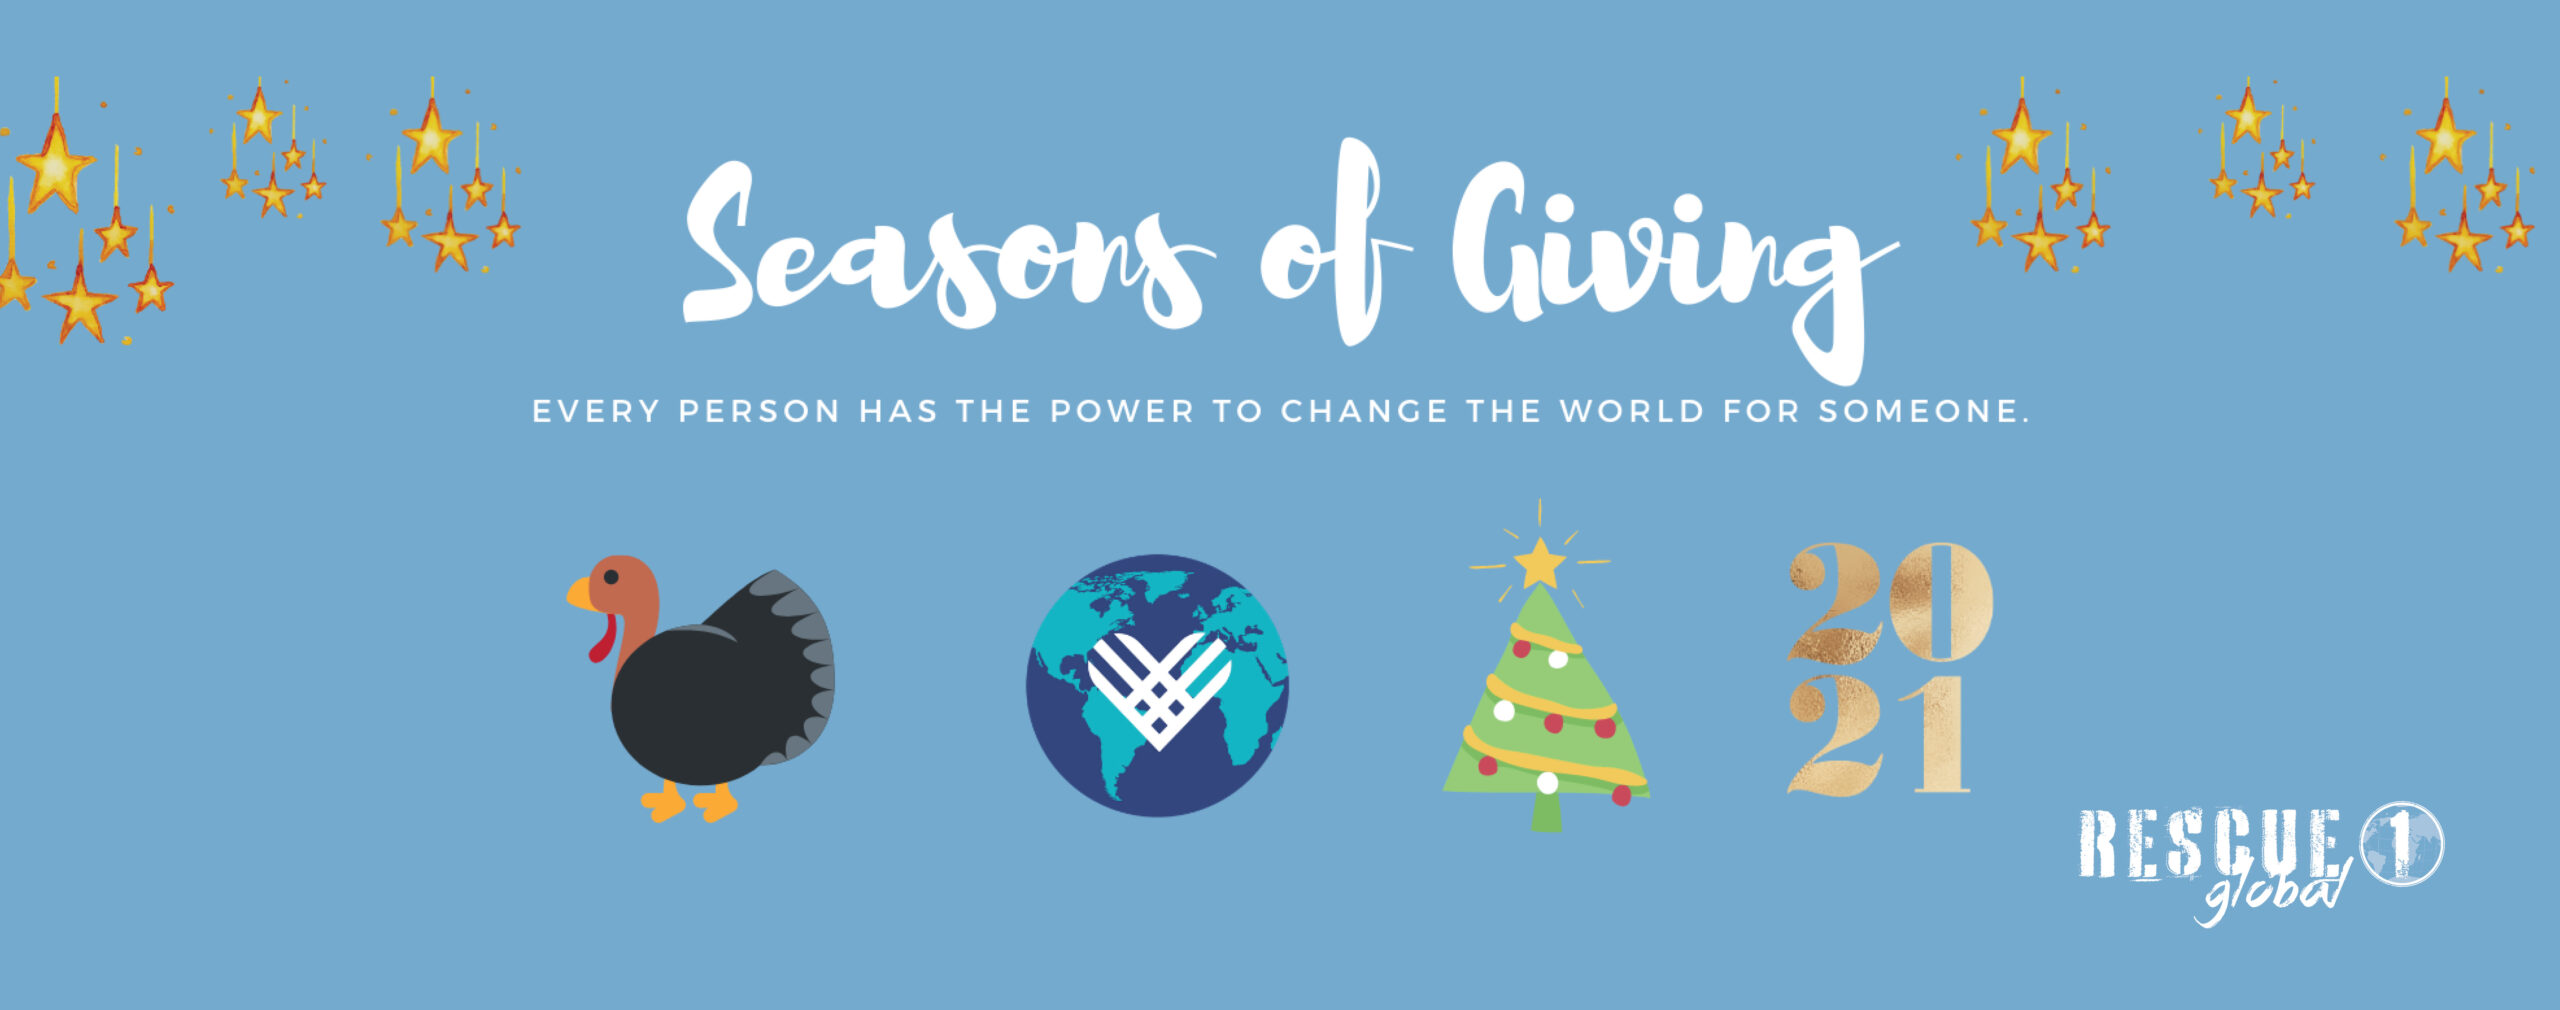 Seasons-of-Giving-website-2-scaled